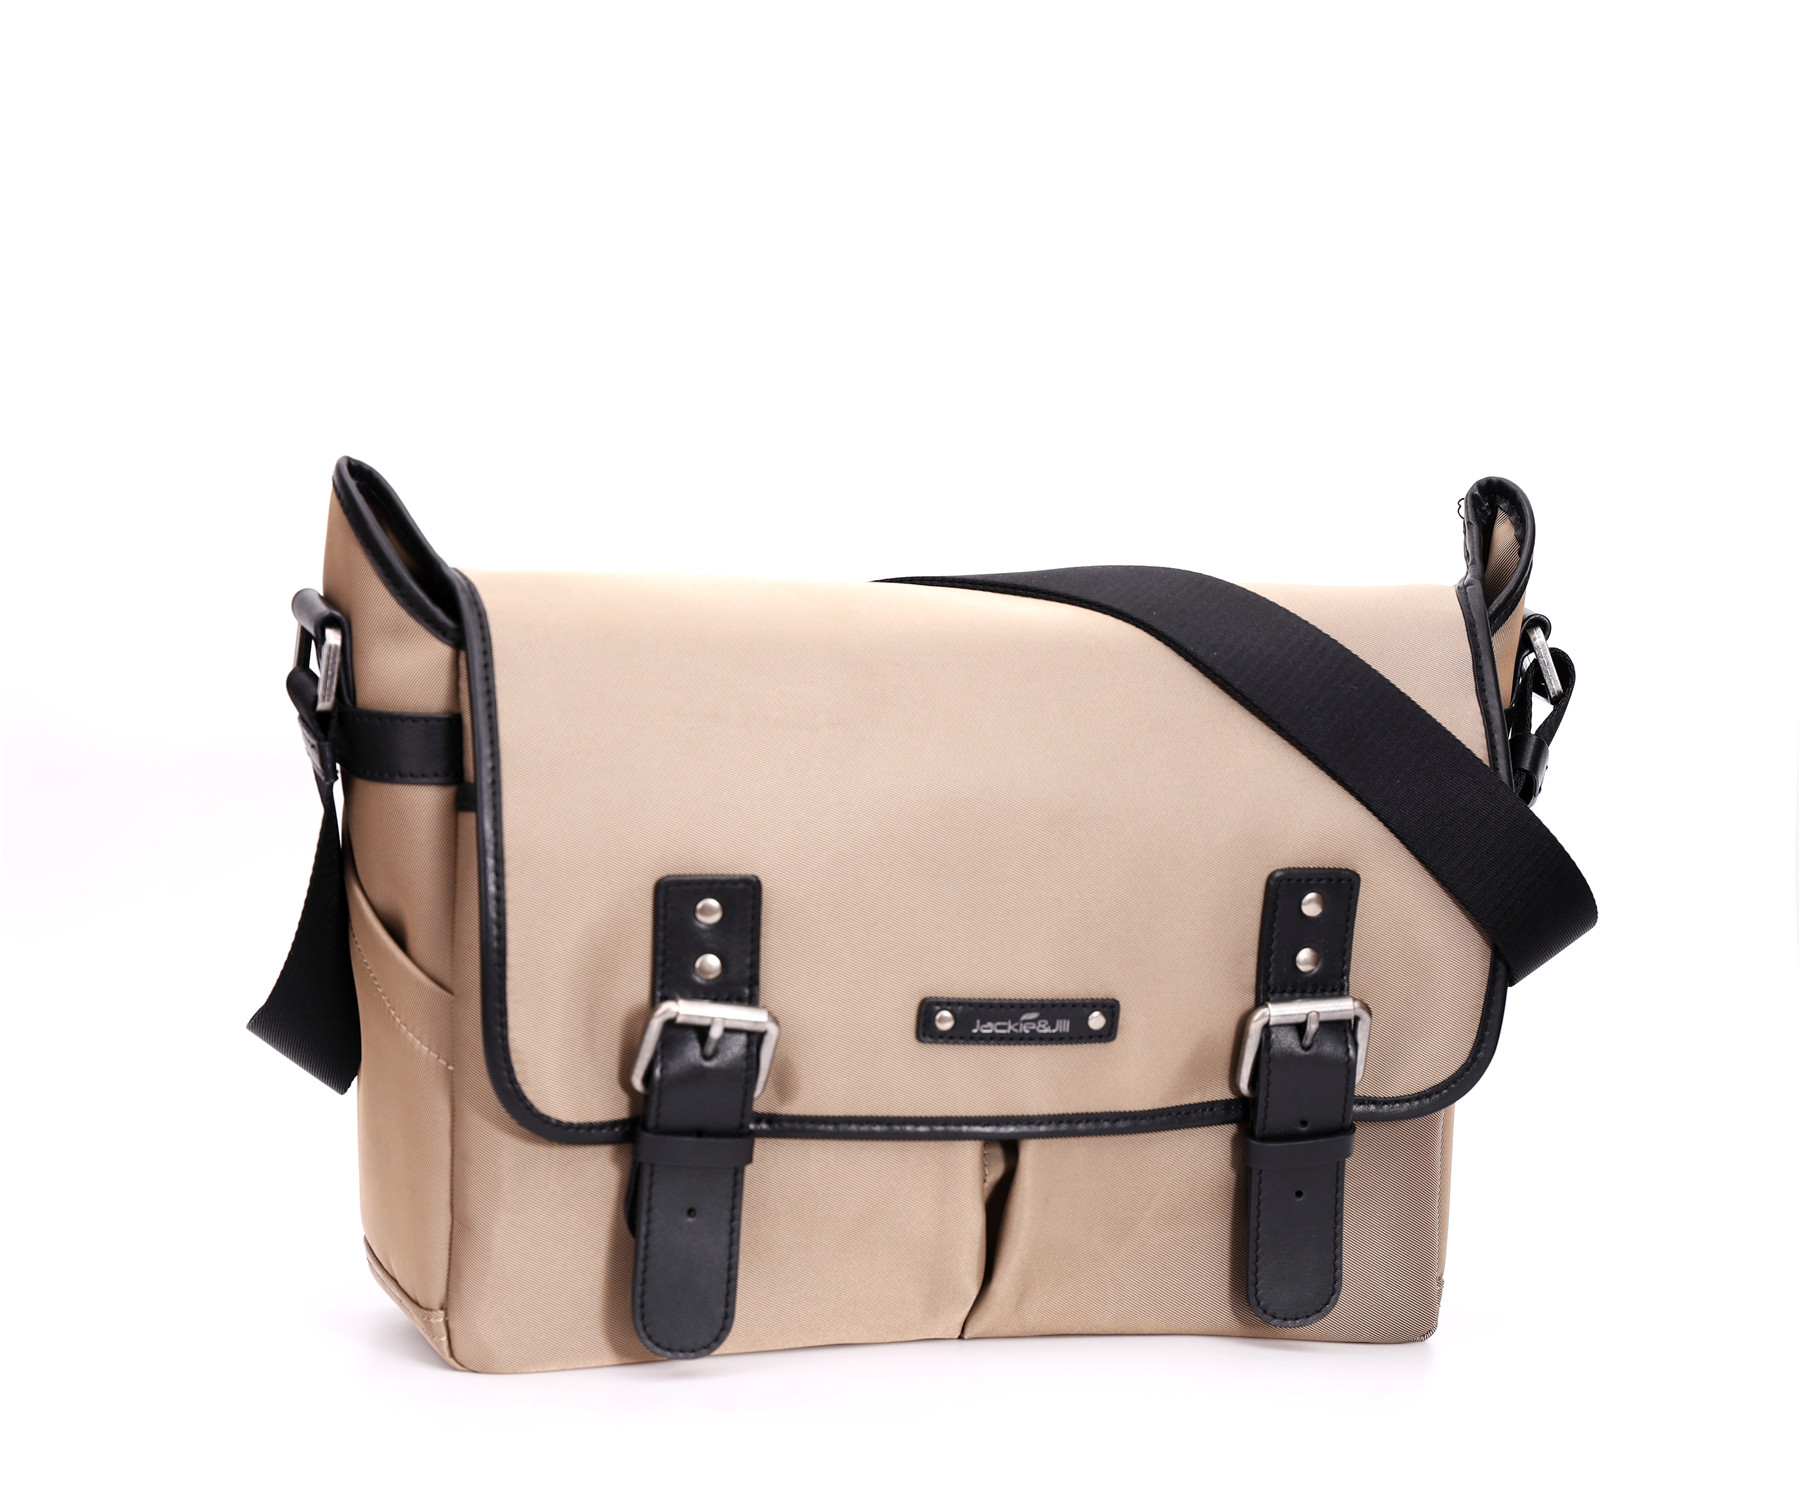 GF bags-mens leather laptop messenger bag | Messenger Bags | GF bags-1